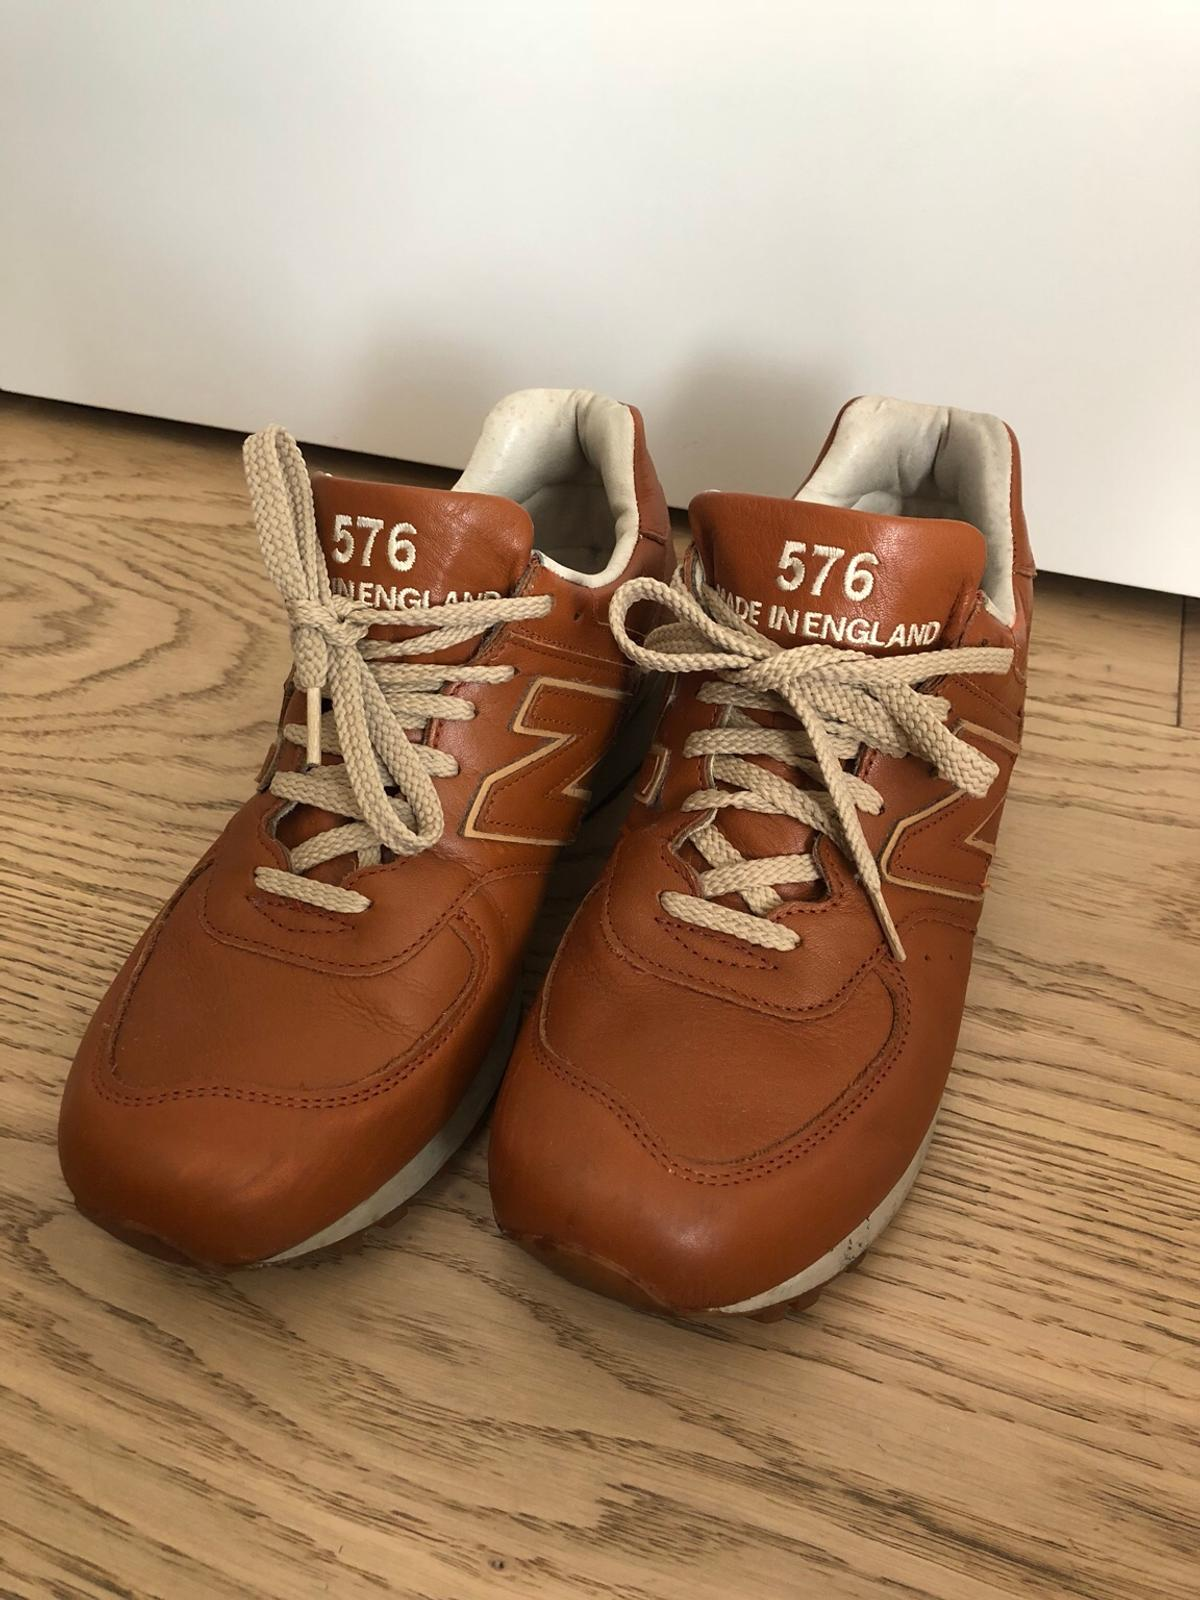 new style 624ab 2a69d NEW BALANCE 576 in pelle n.43 unisex in 47521 Cesena für ...